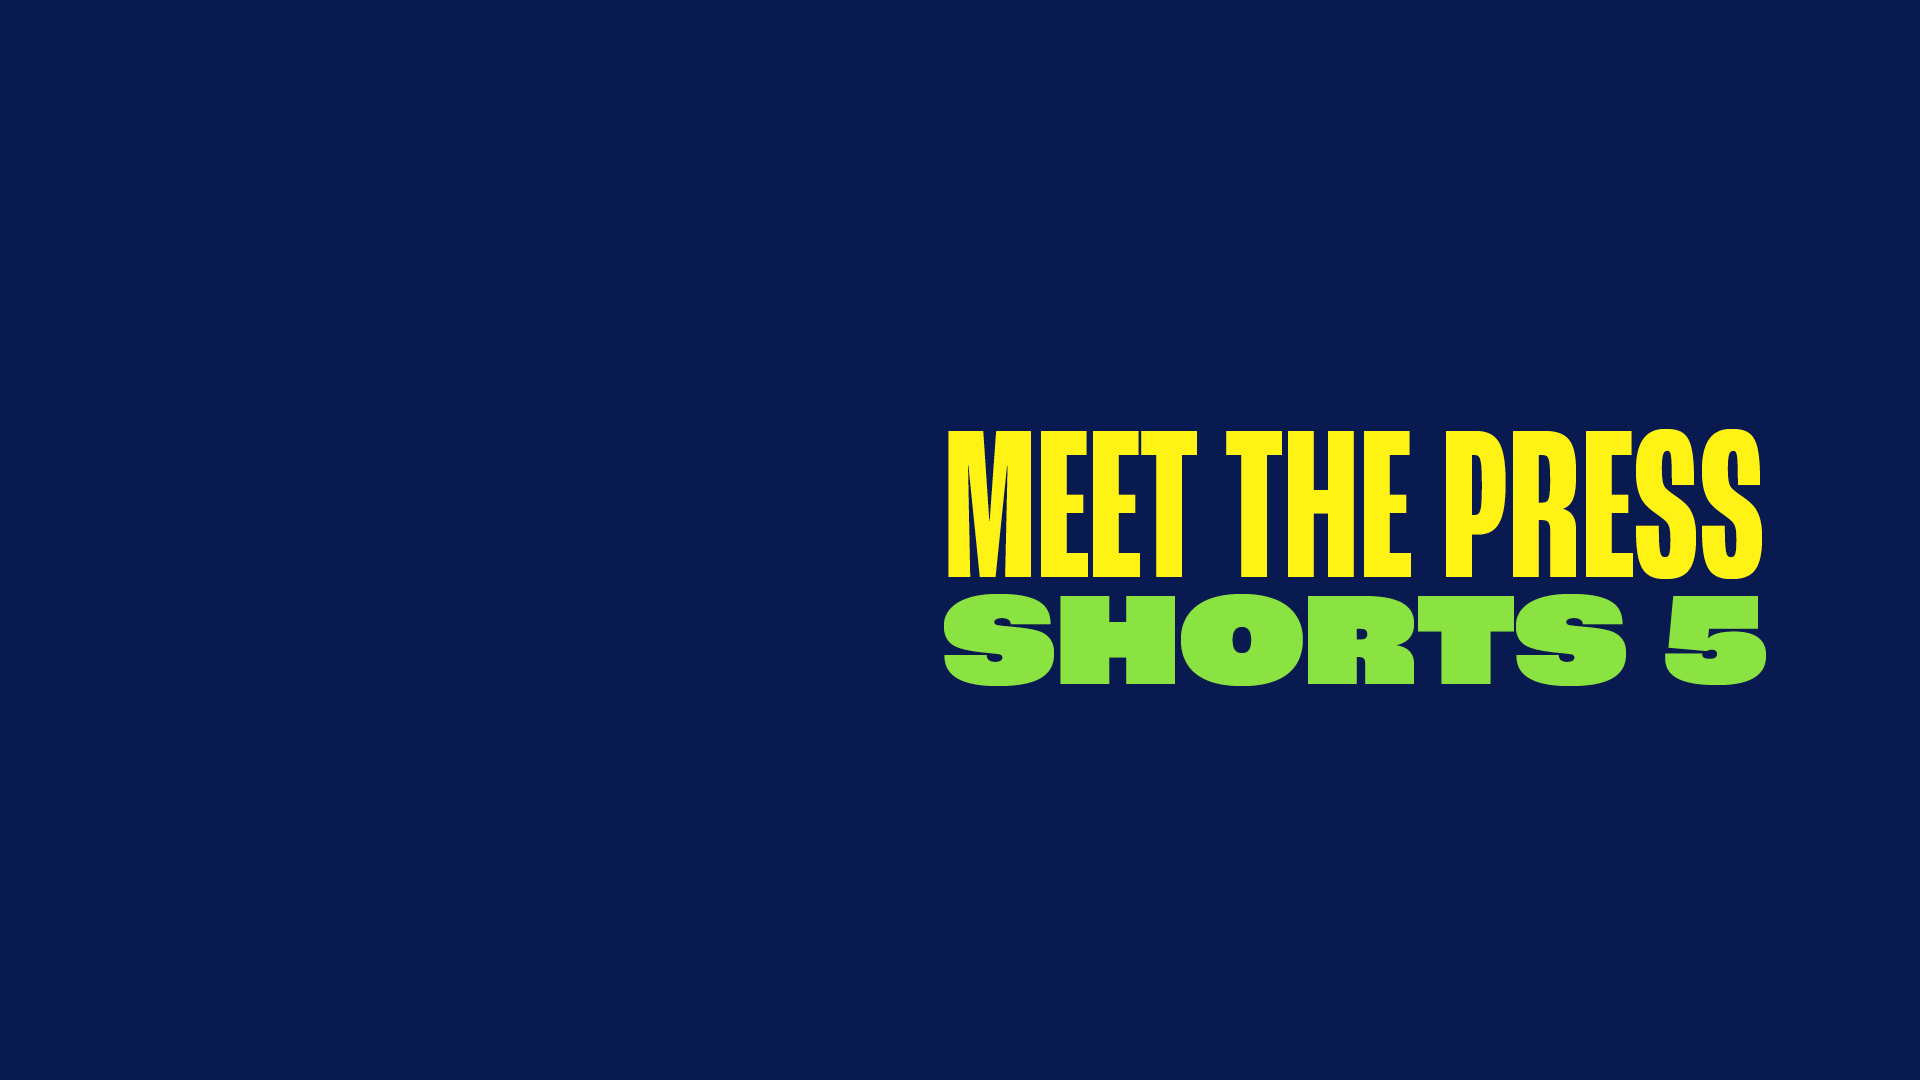 MEET THE PRESS SHORTS 5: Justice For All